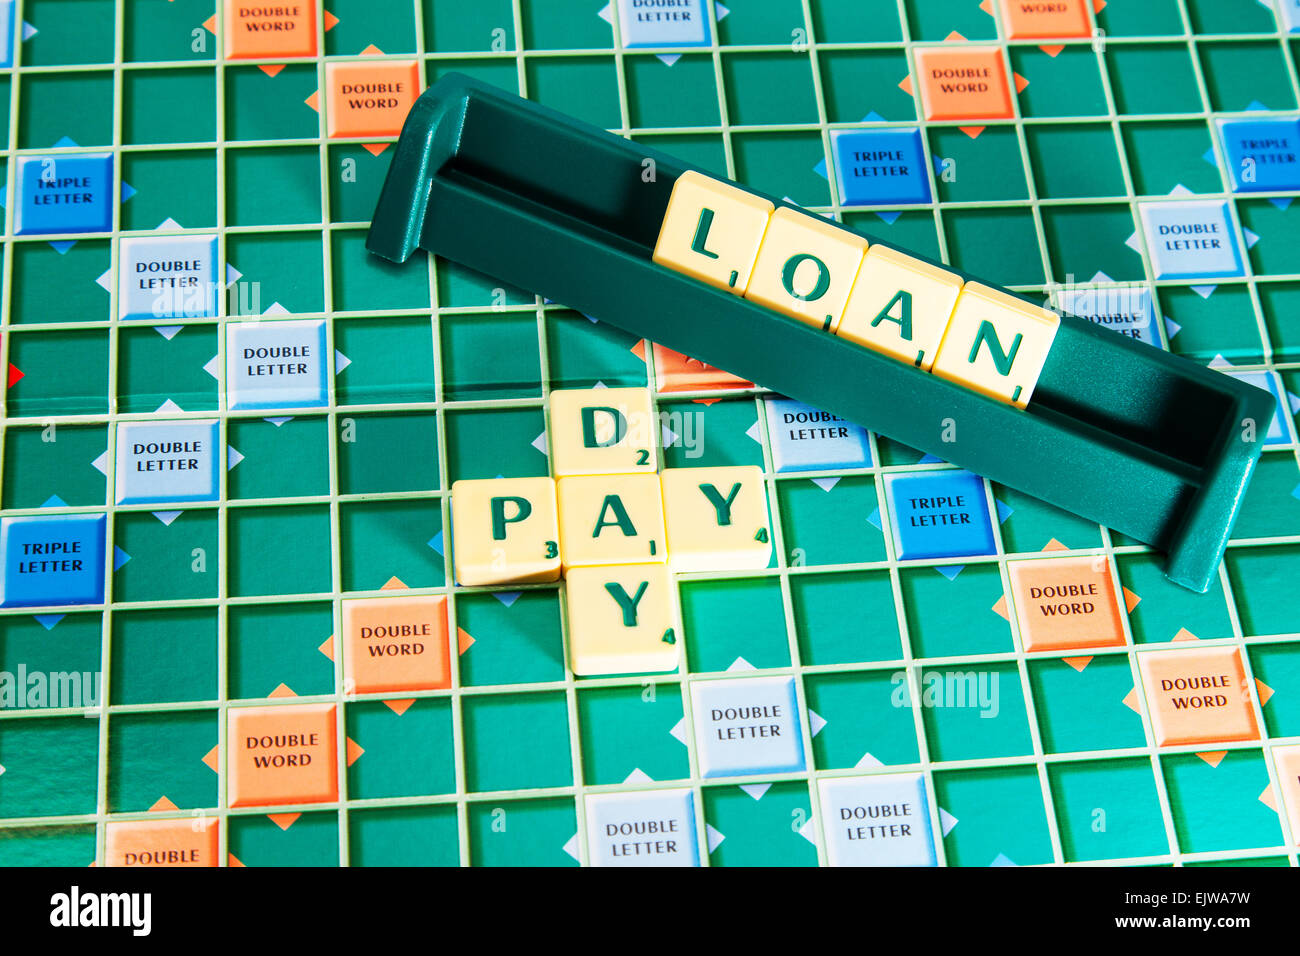 pay day loan loans lending lenders wonga money cash words using scrabble tiles to illustrate spelling spell out Stock Photo